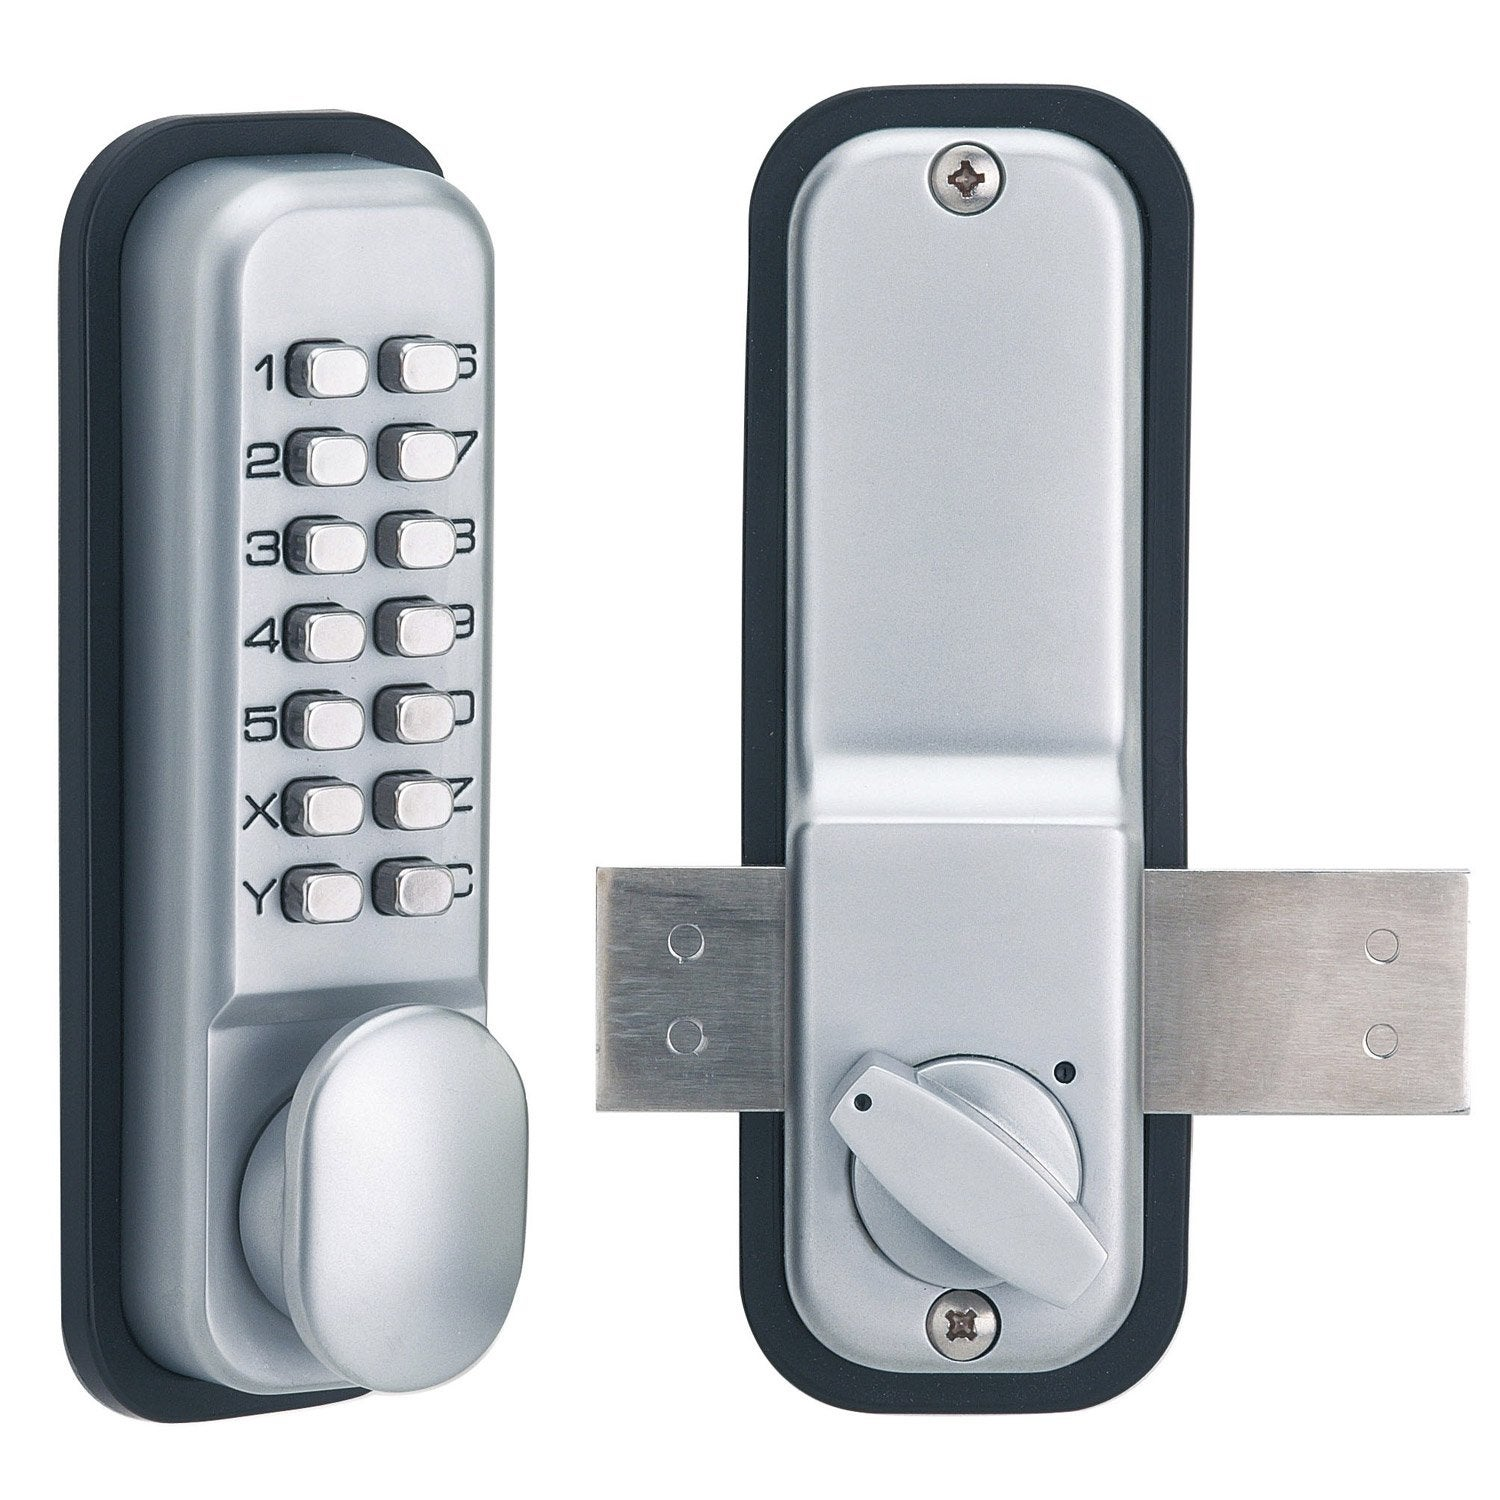 Fancy loquet de porte choices - Connect leroymerlin fr ...